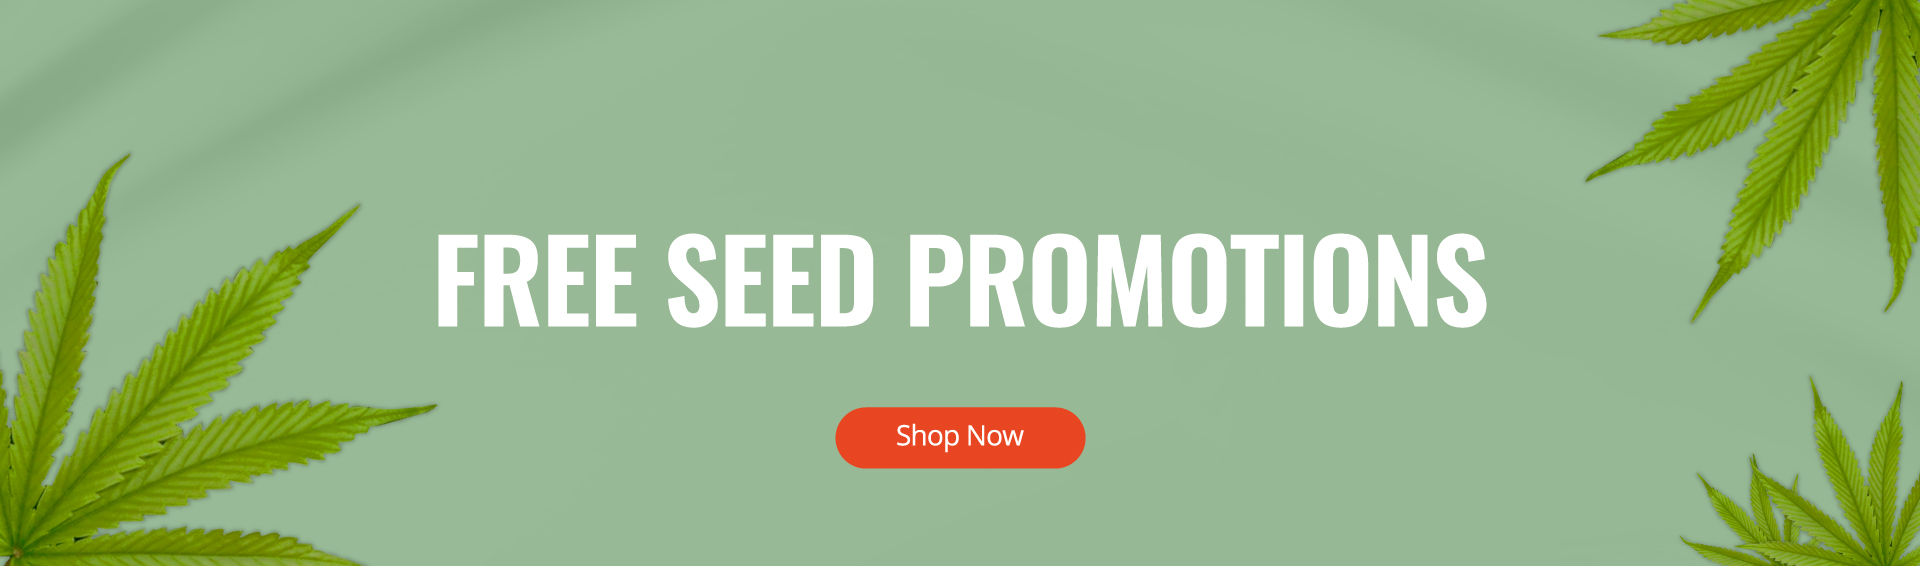 Homepage - Promotions